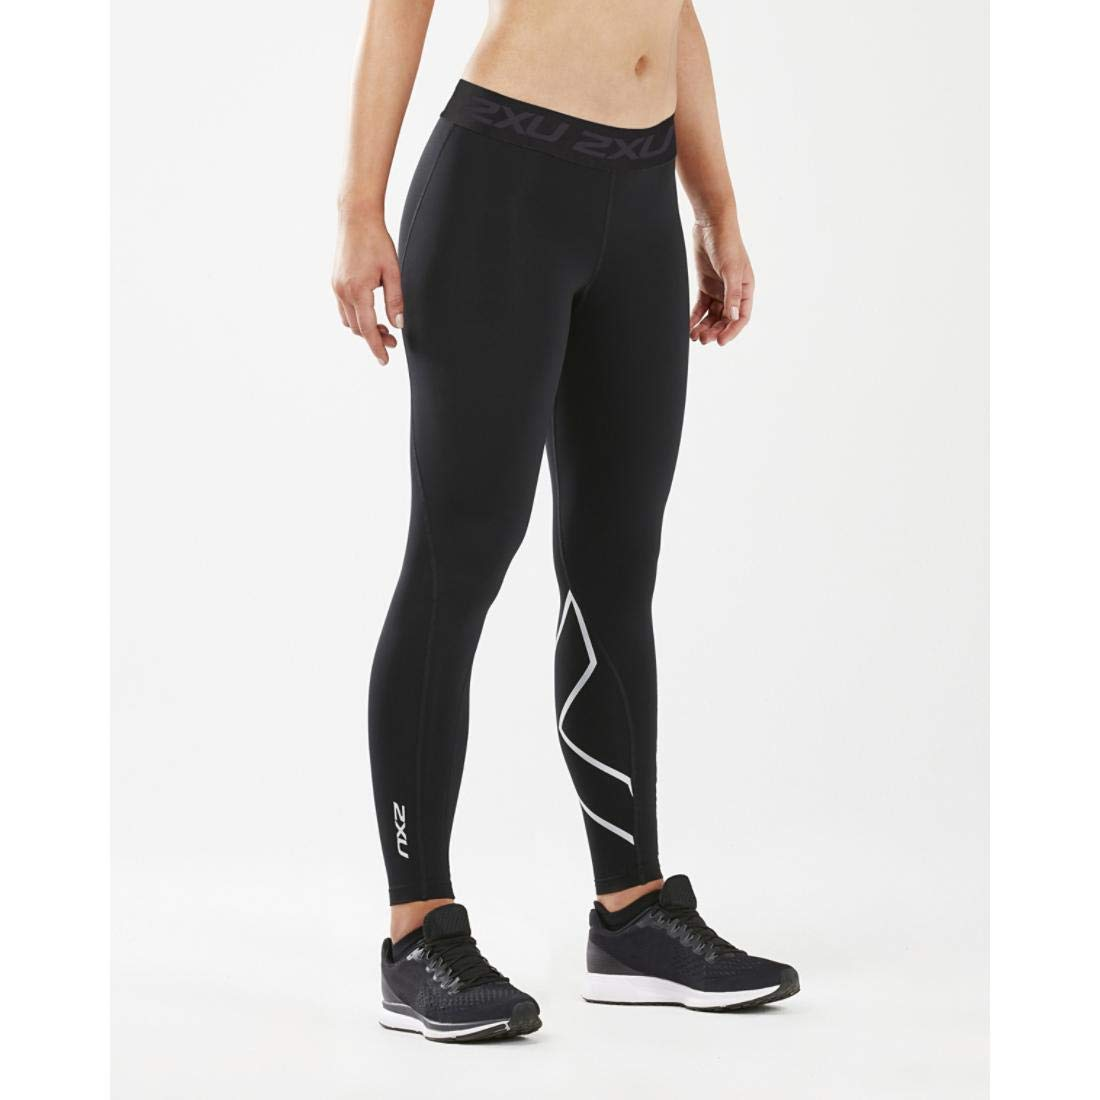 2XU Women's Thermal Compression Tights Black/Silver X-Large R R